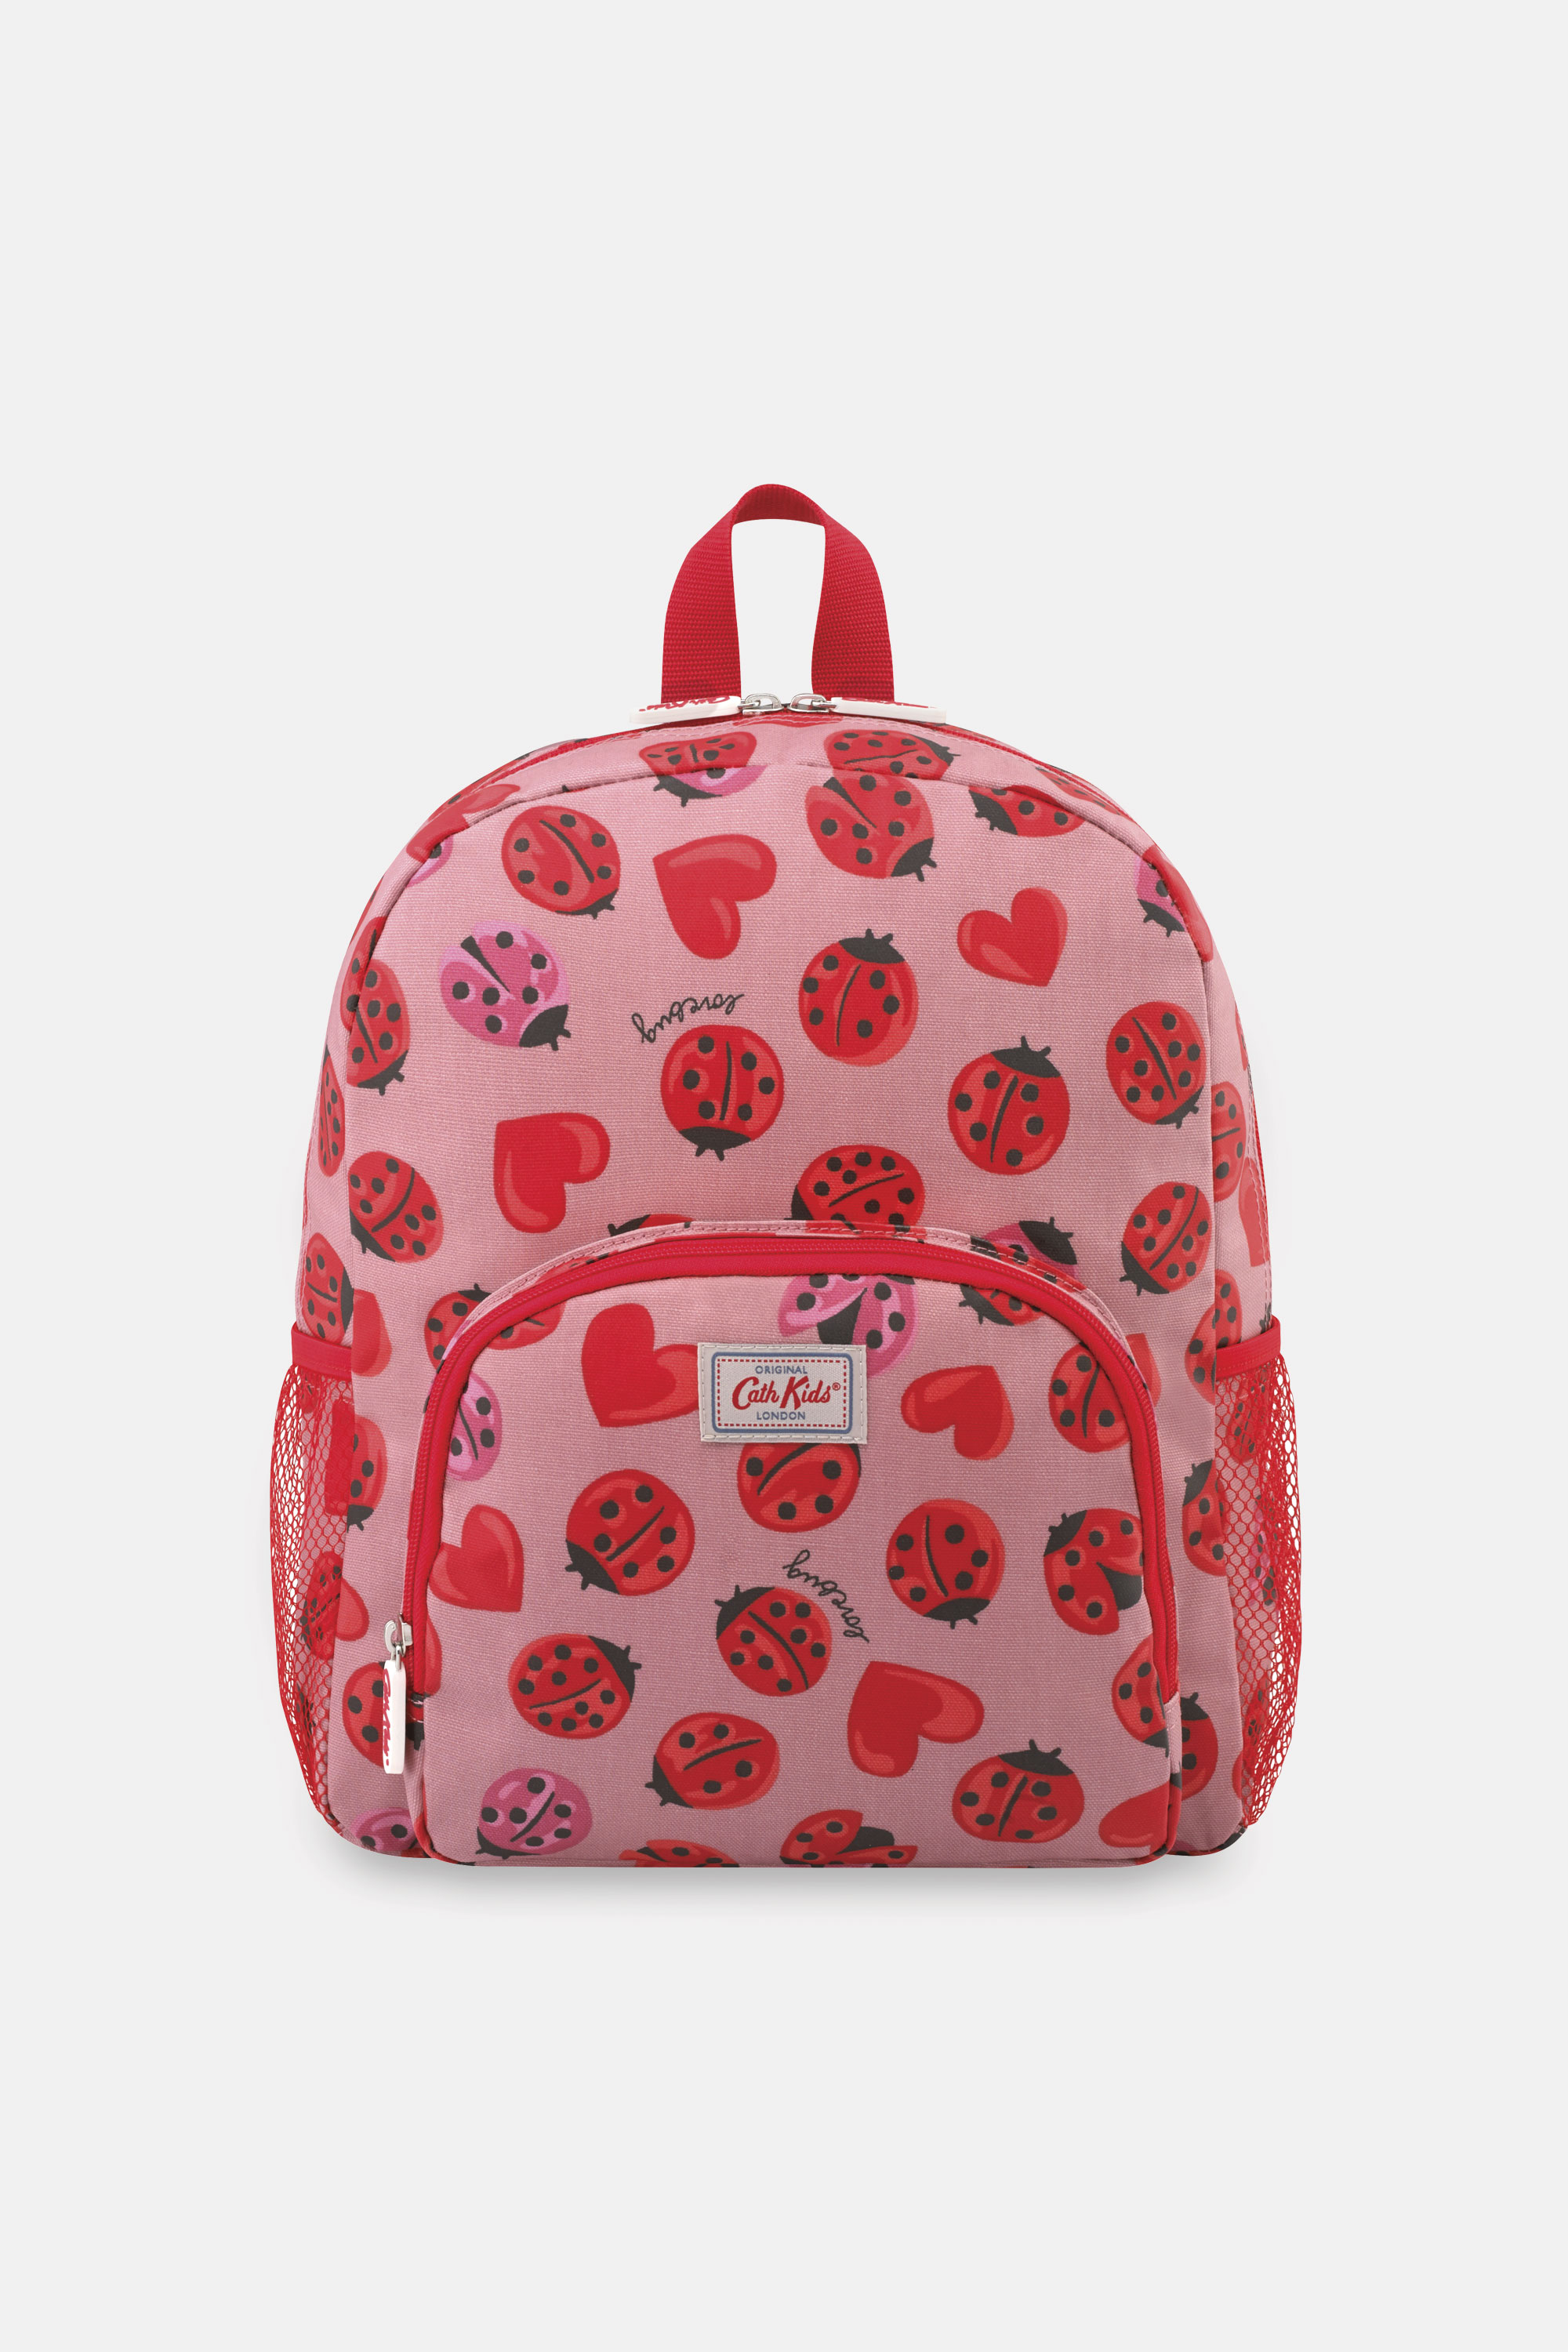 Cath Kidston Lovebugs Kids Large Backpack in Pale Rose